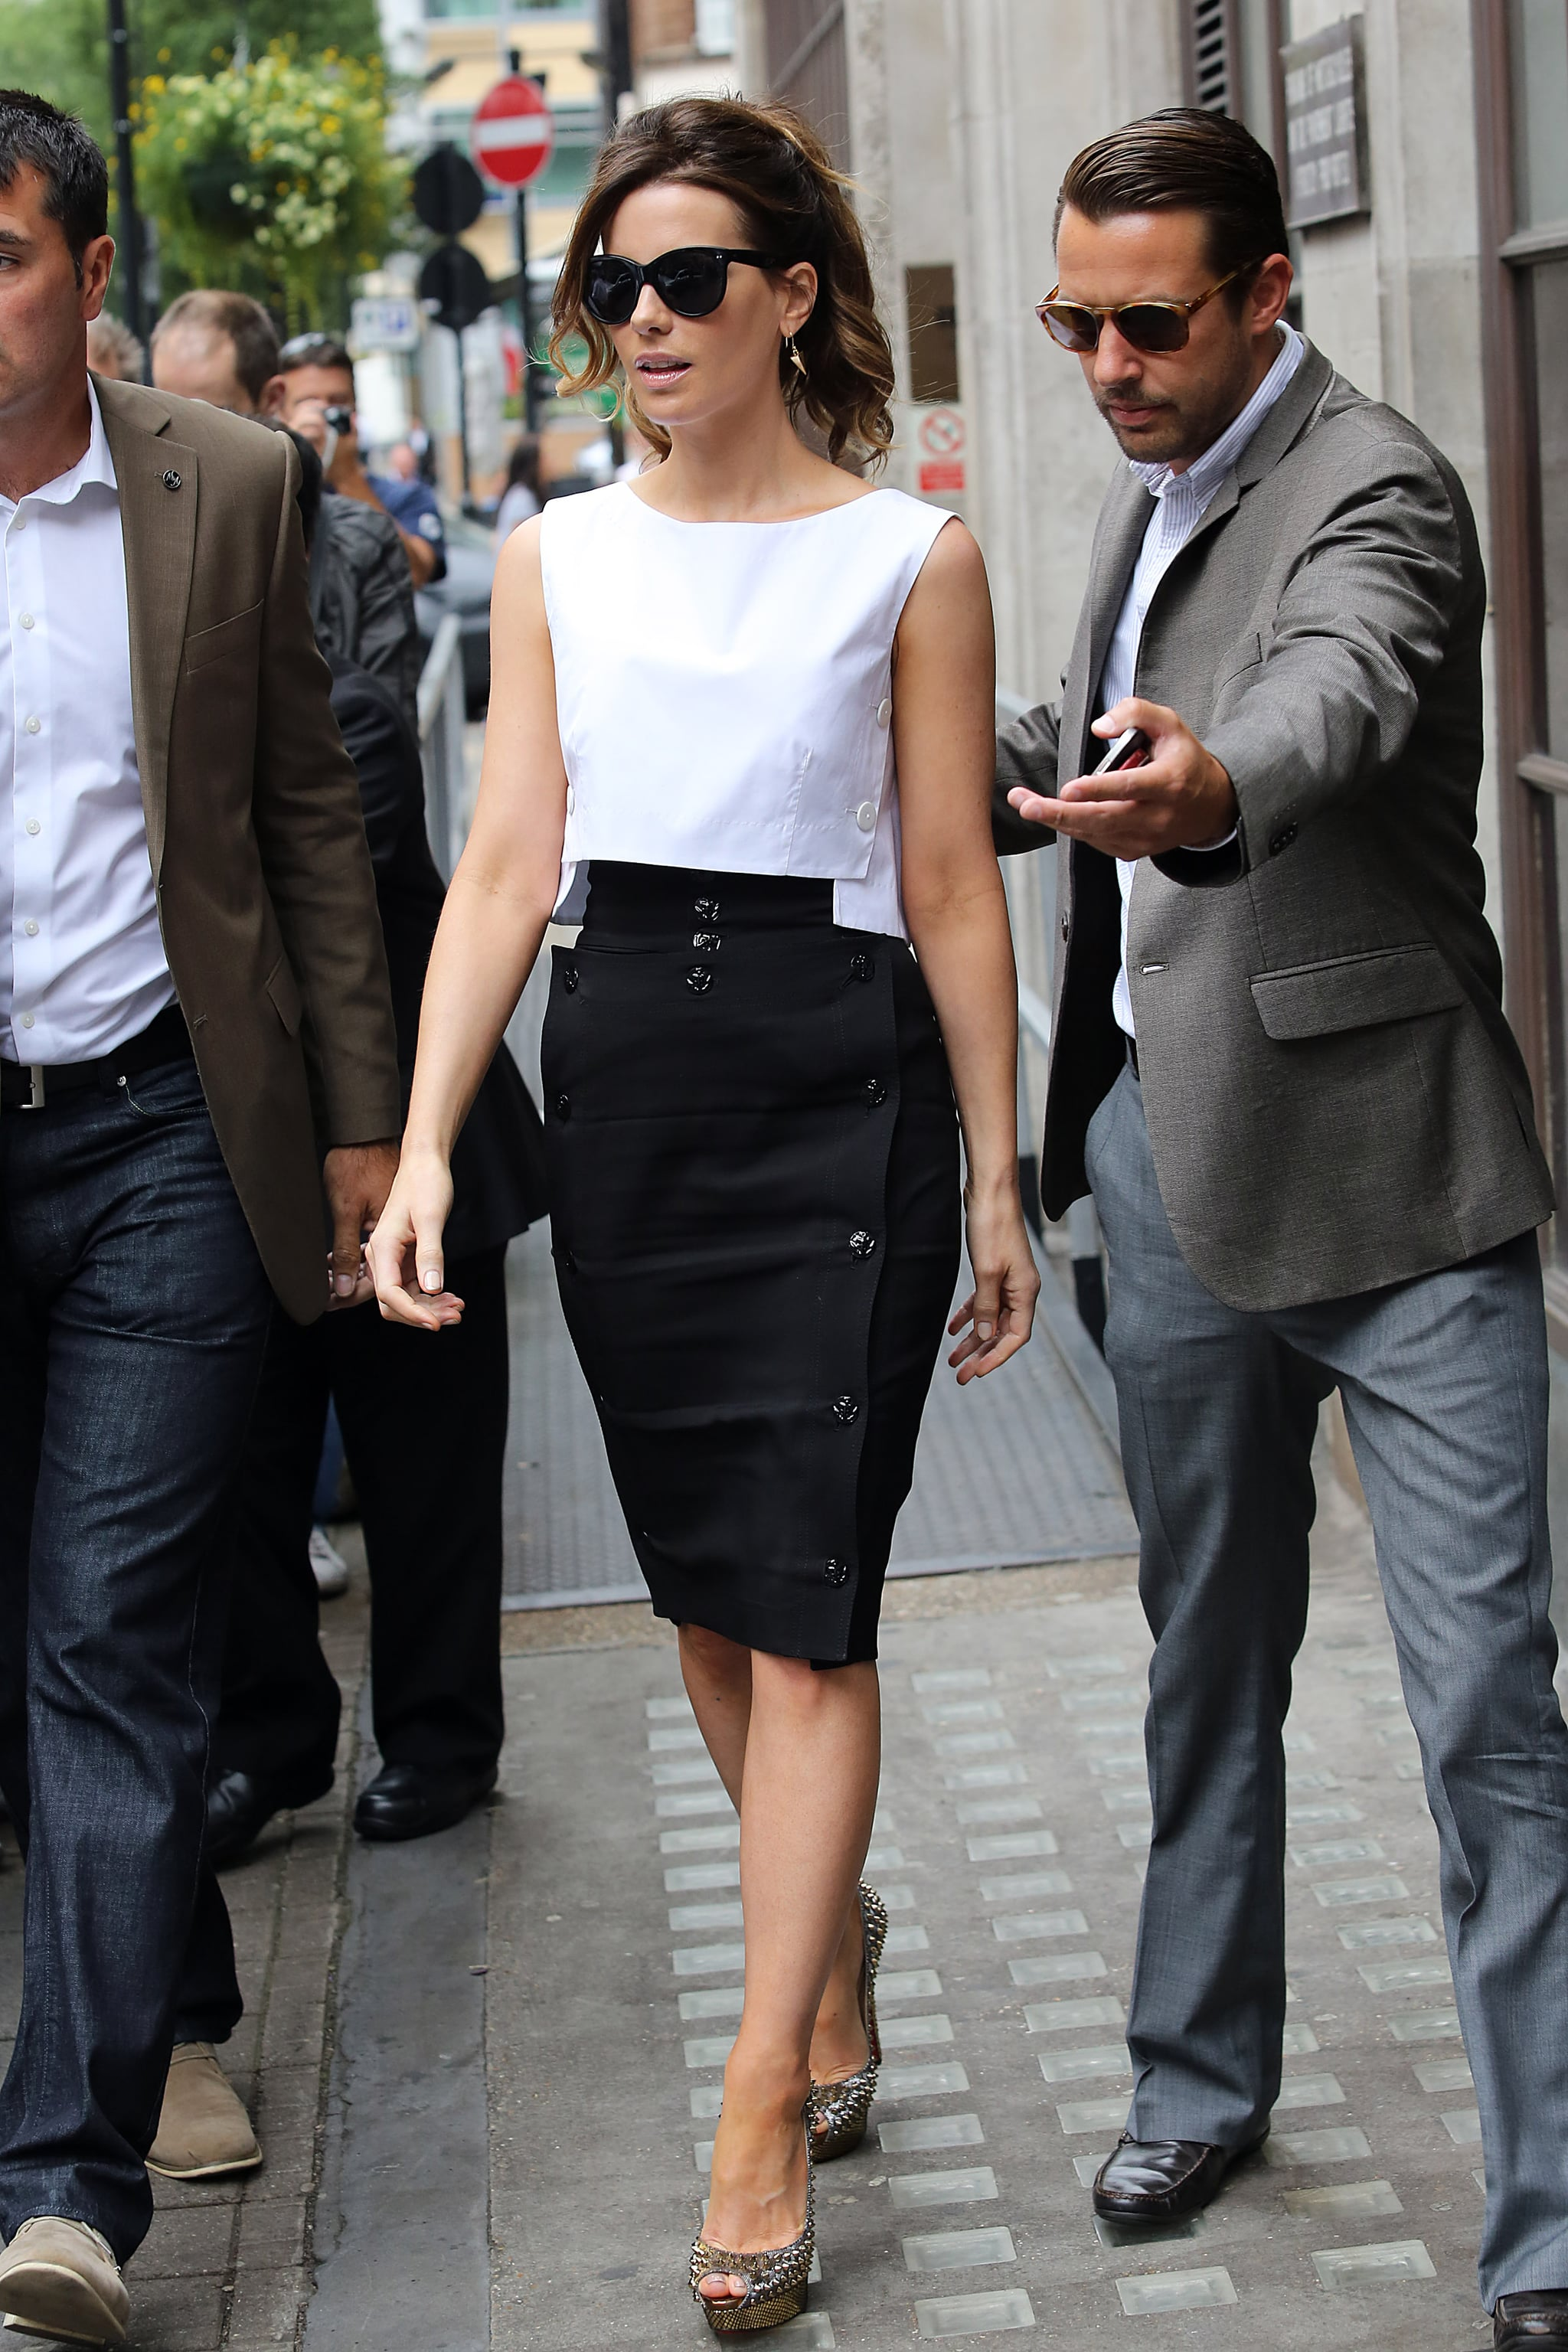 Kate Beckinsale wore a black and white dress out in London.